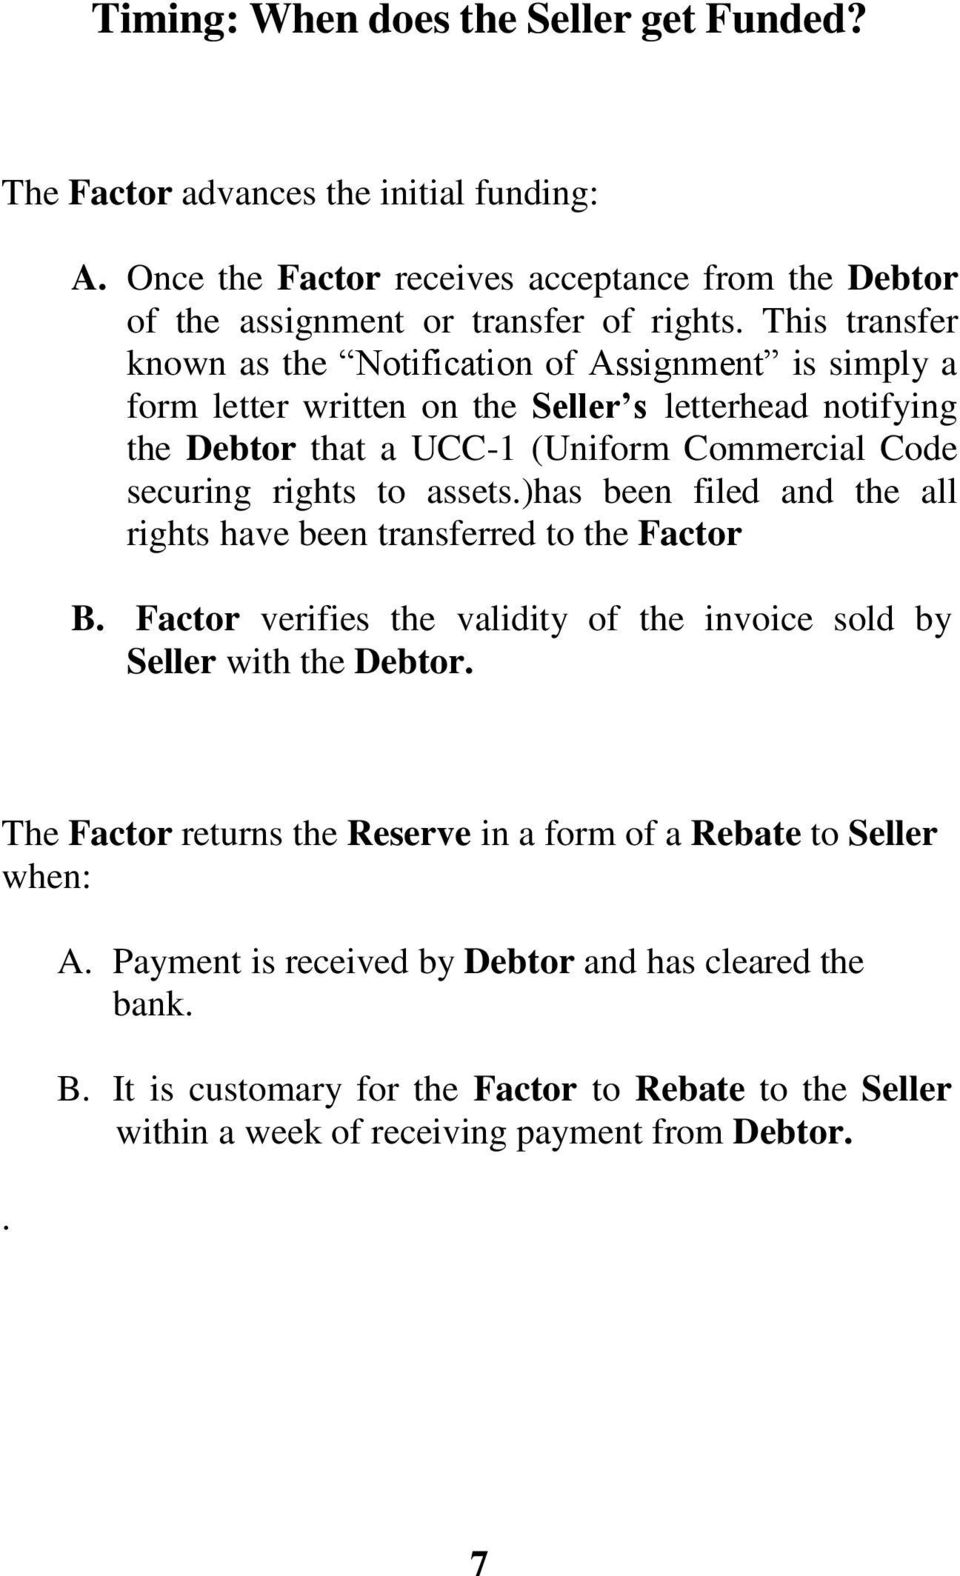 assets.)has been filed and the all rights have been transferred to the Factor B. Factor verifies the validity of the invoice sold by Seller with the Debtor.